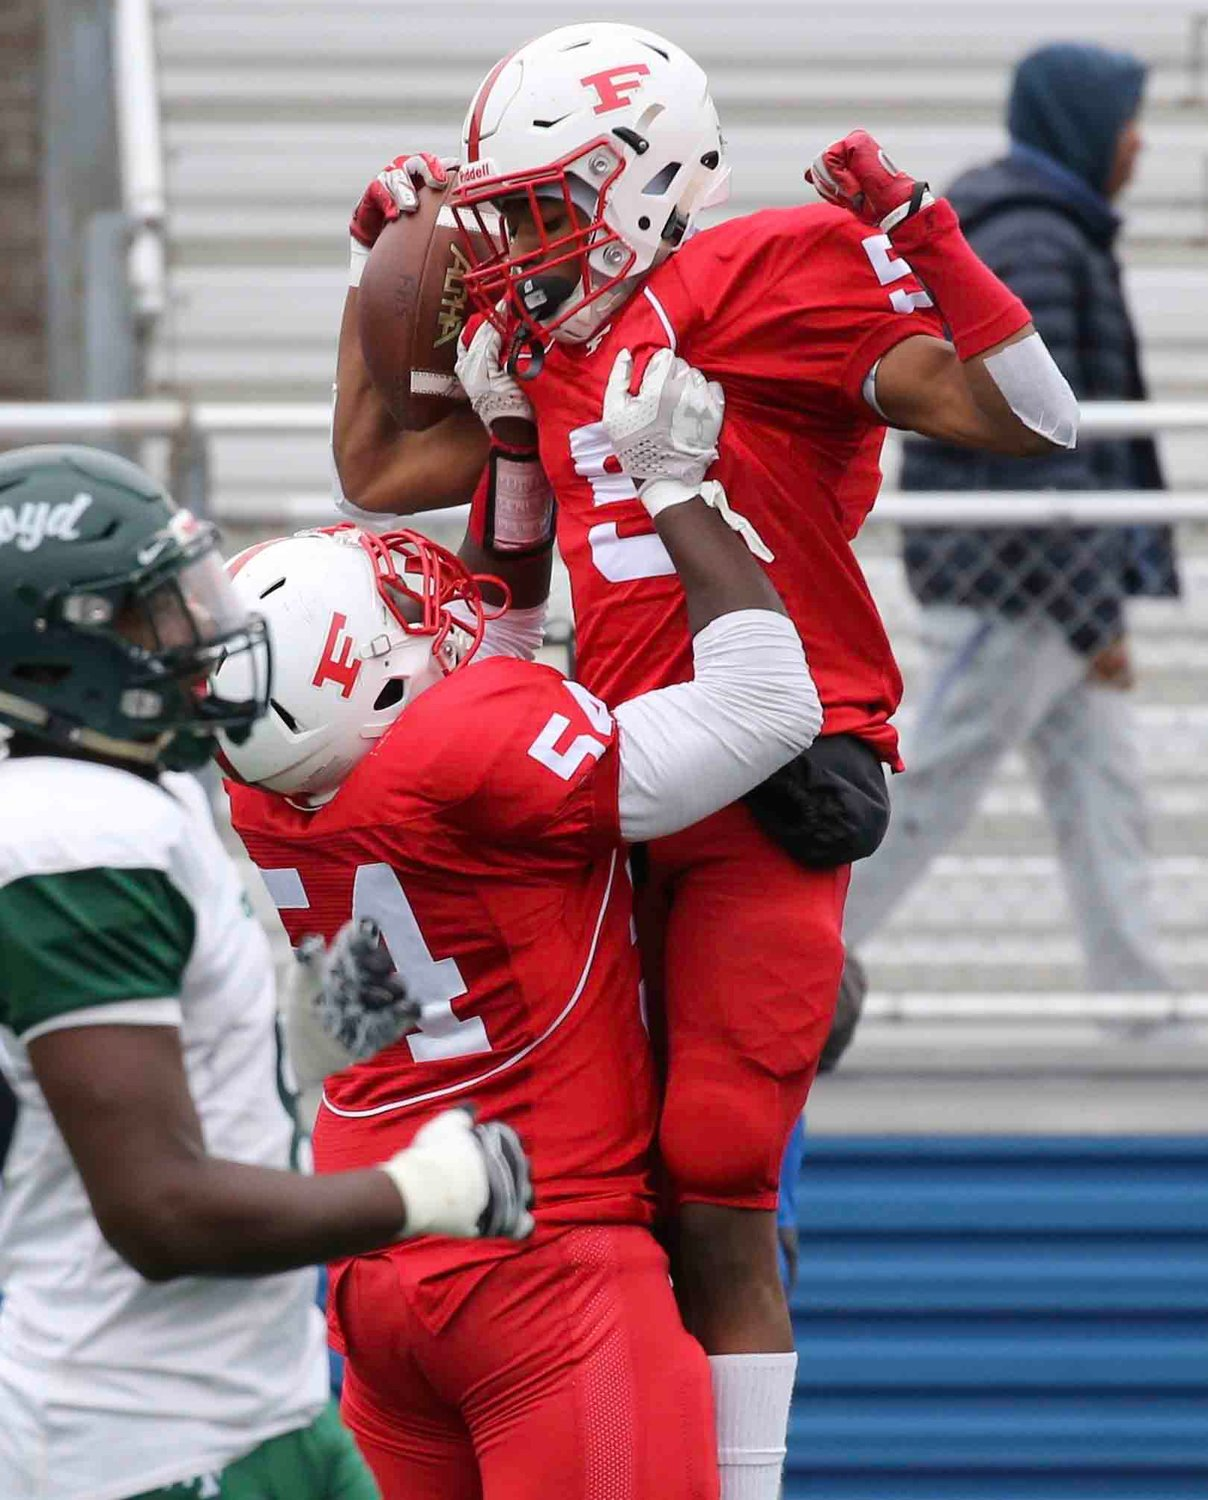 Freeport's Jordan Jackson, right, got a lift from Gerard Smikle after he opened the scoring in Saturday's 20-19 victory over William Floyd in the Long Island Class I championship game at Hofstra.